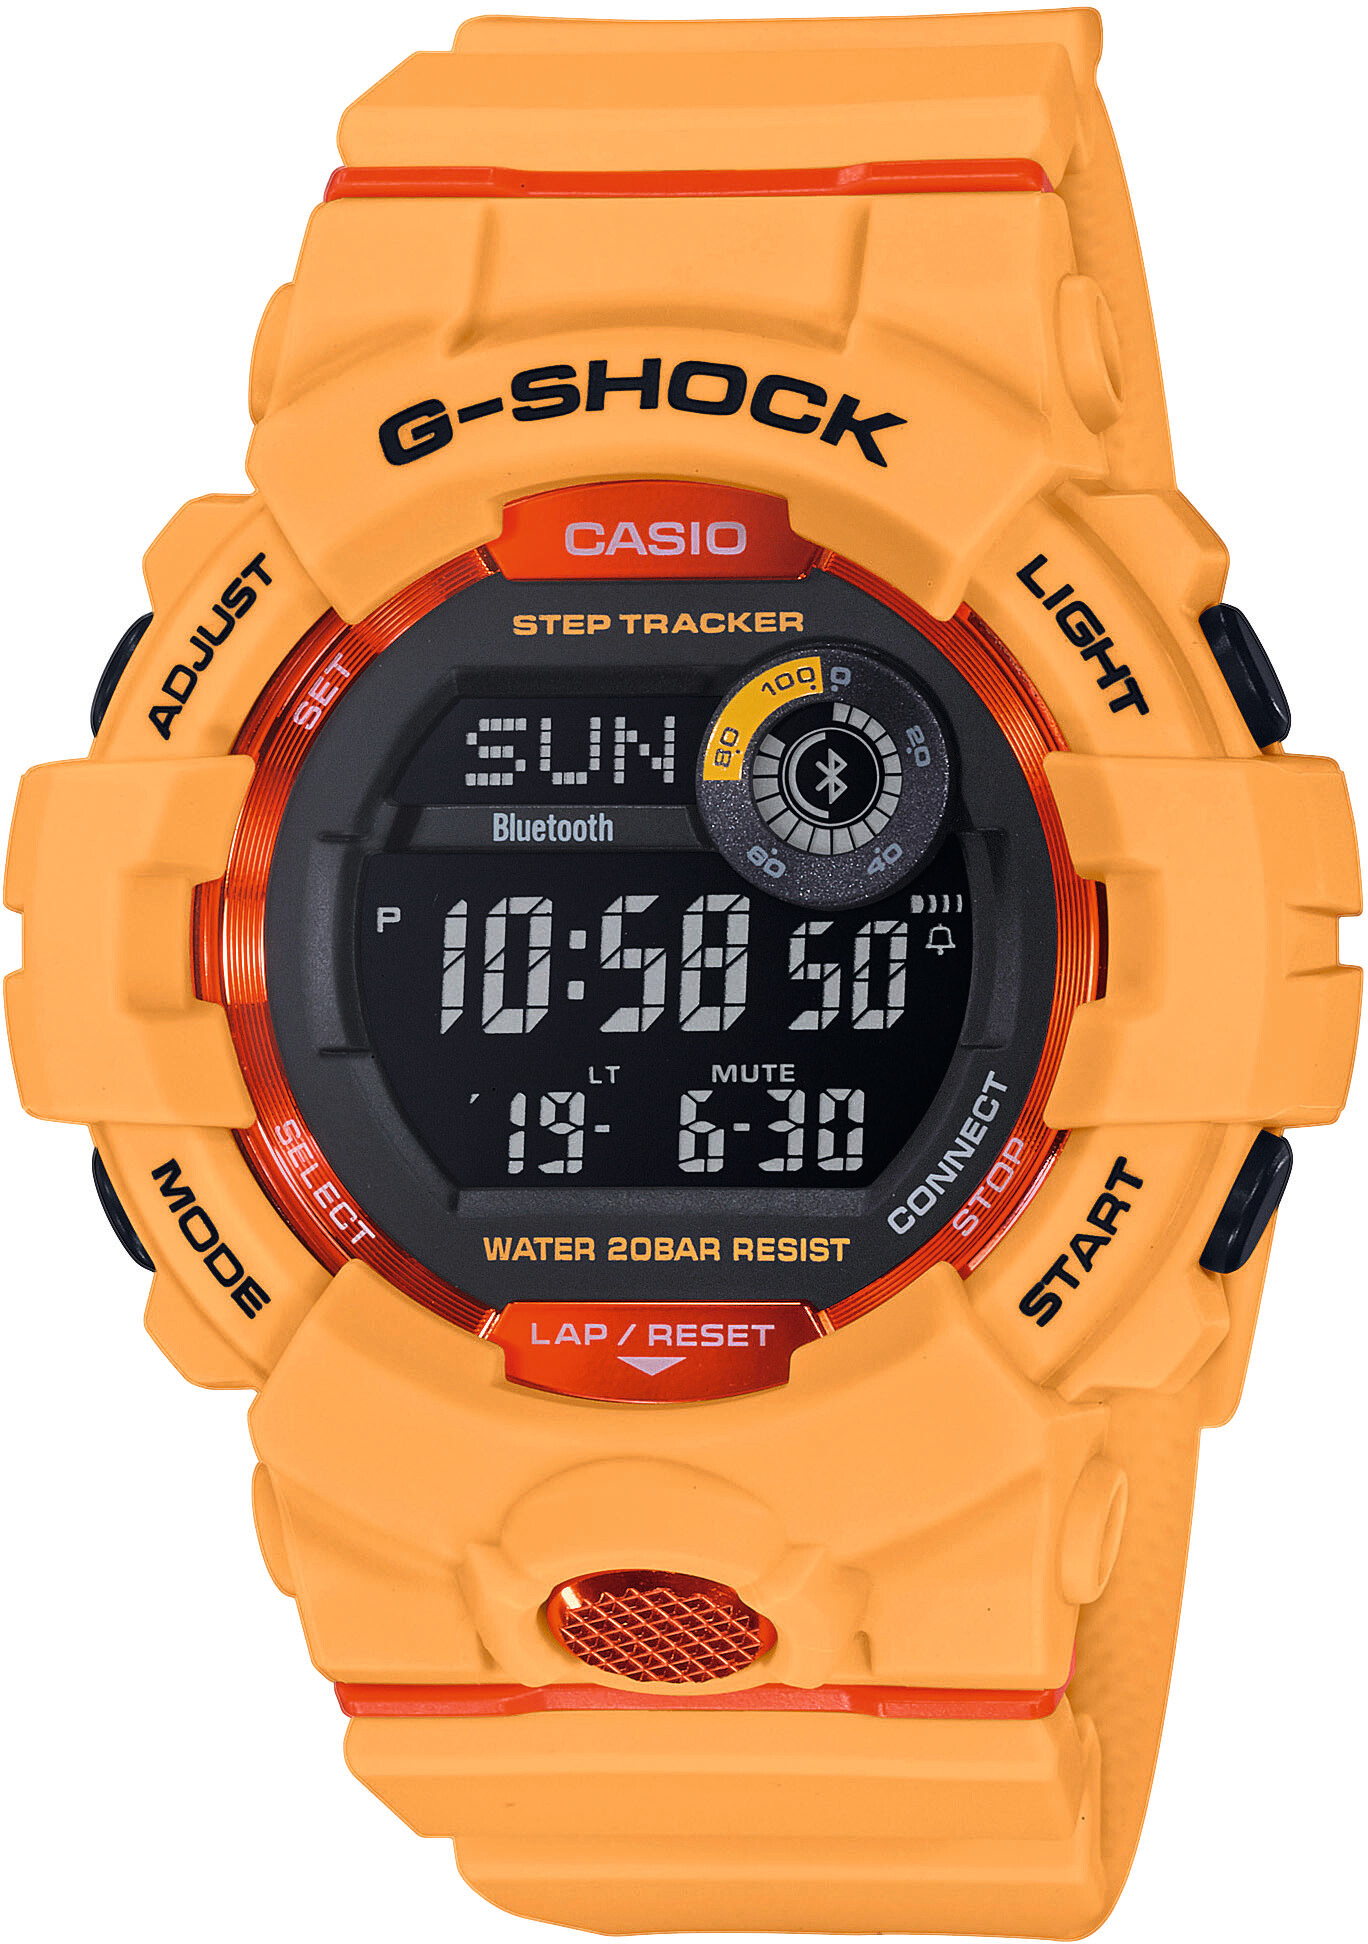 casio g shock gbd 800 4er uhr herren orange orange black. Black Bedroom Furniture Sets. Home Design Ideas